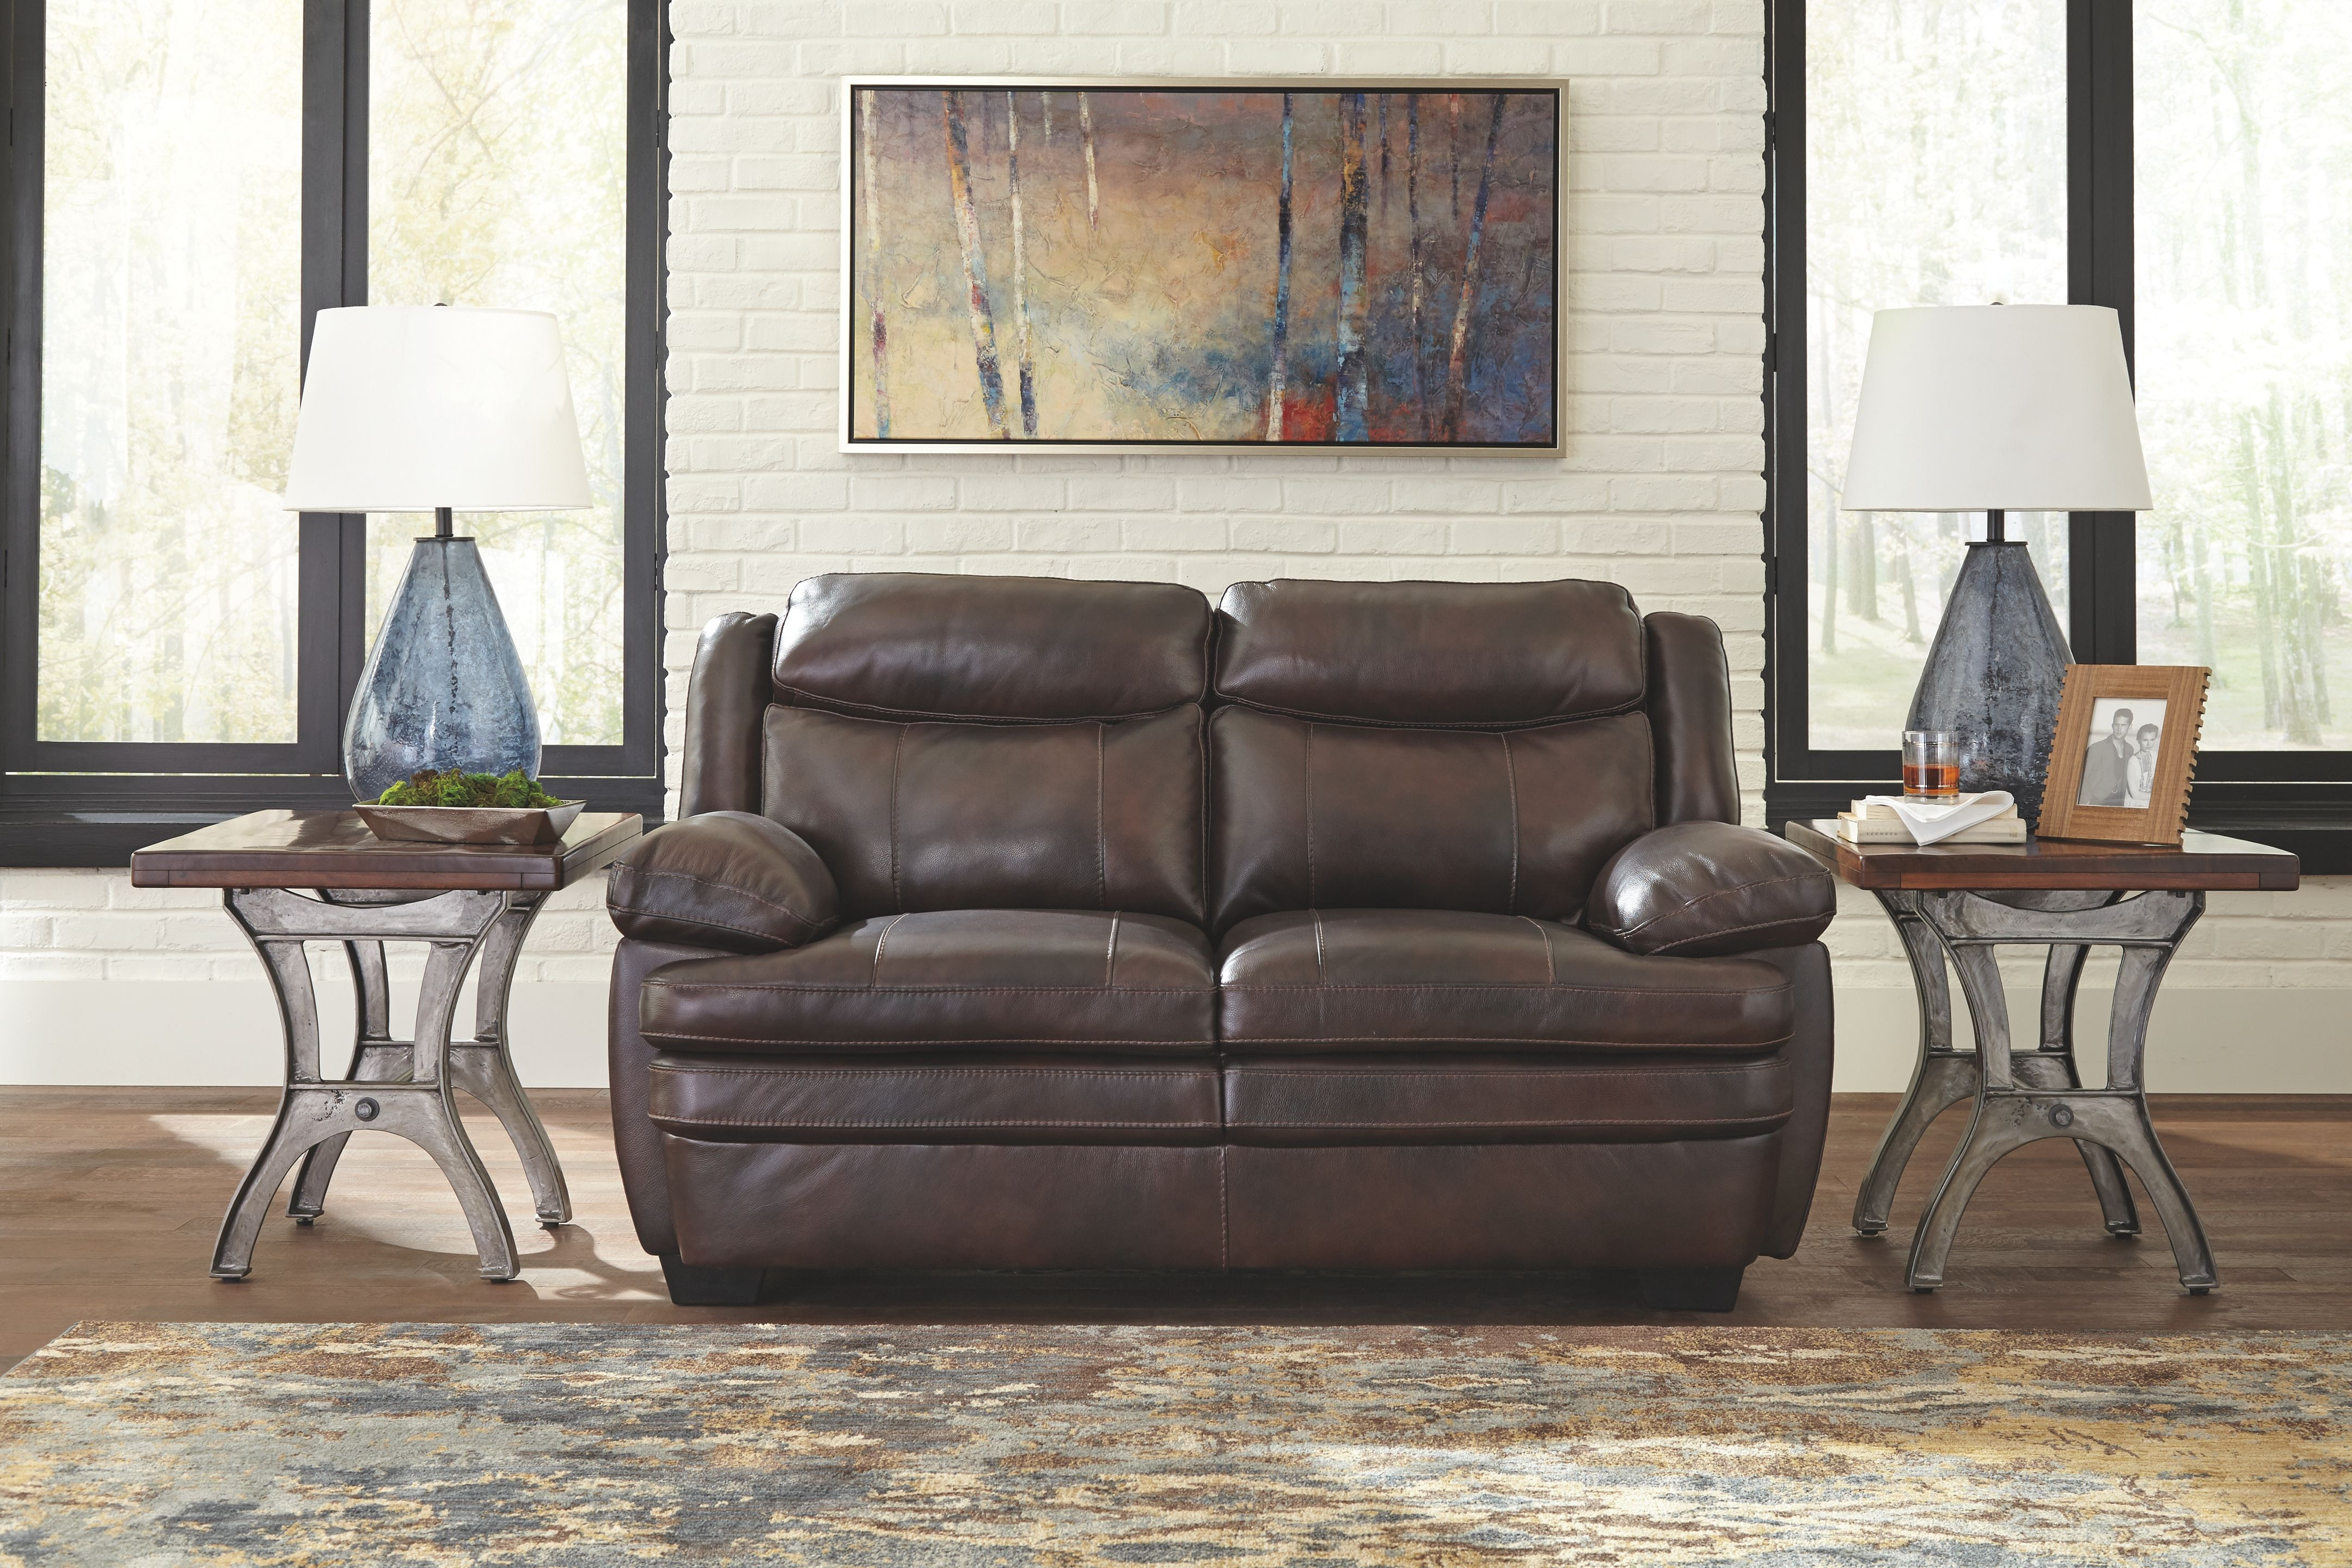 Lovely Signature Design By Ashley Hannalore Loveseat On Sale At Elgin Furniture In  Euclid, Cleveland Heights, U0026 North Randall